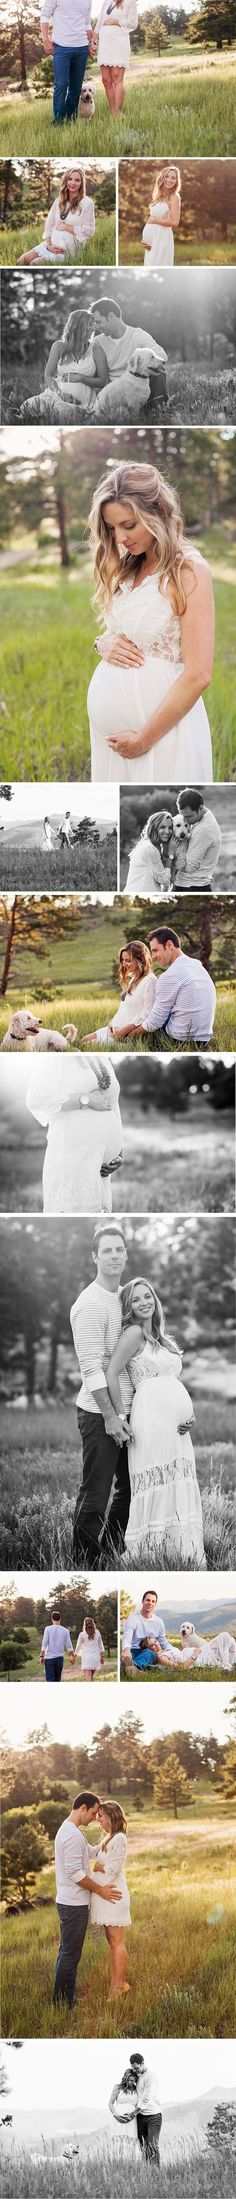 This gorgeous maternity session by La Petite Peach